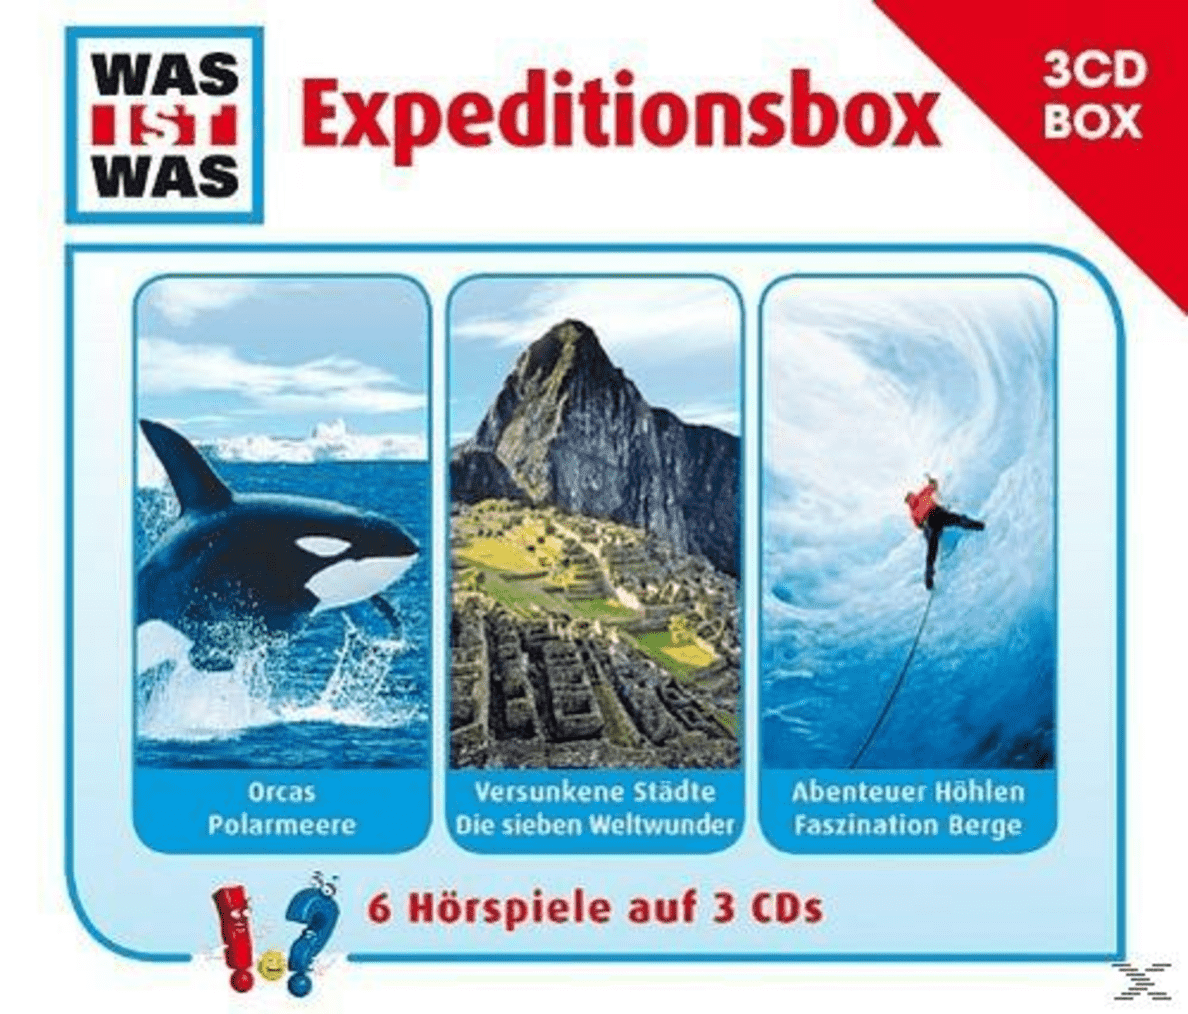 Was Ist Was WAS IST WAS Expeditionsbox Kinder/Jugend